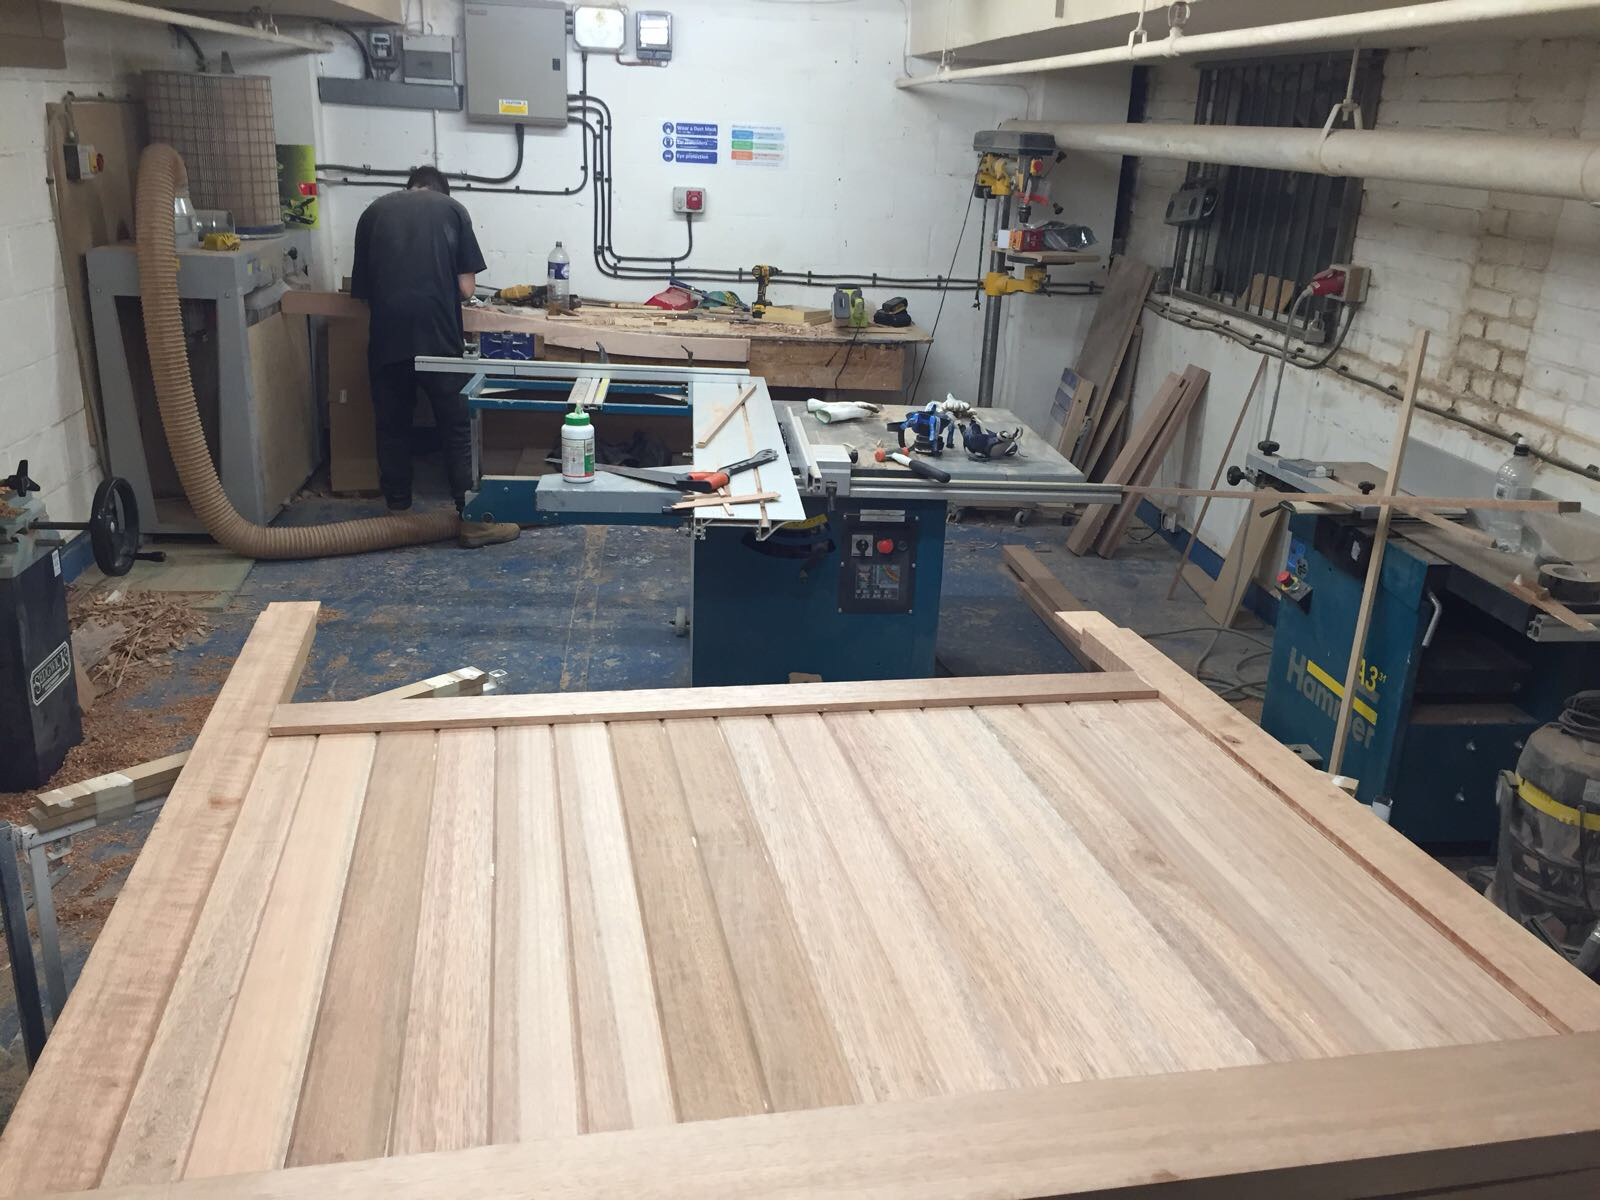 - Here is a quick run through a set of gates we recently made in the workshop.